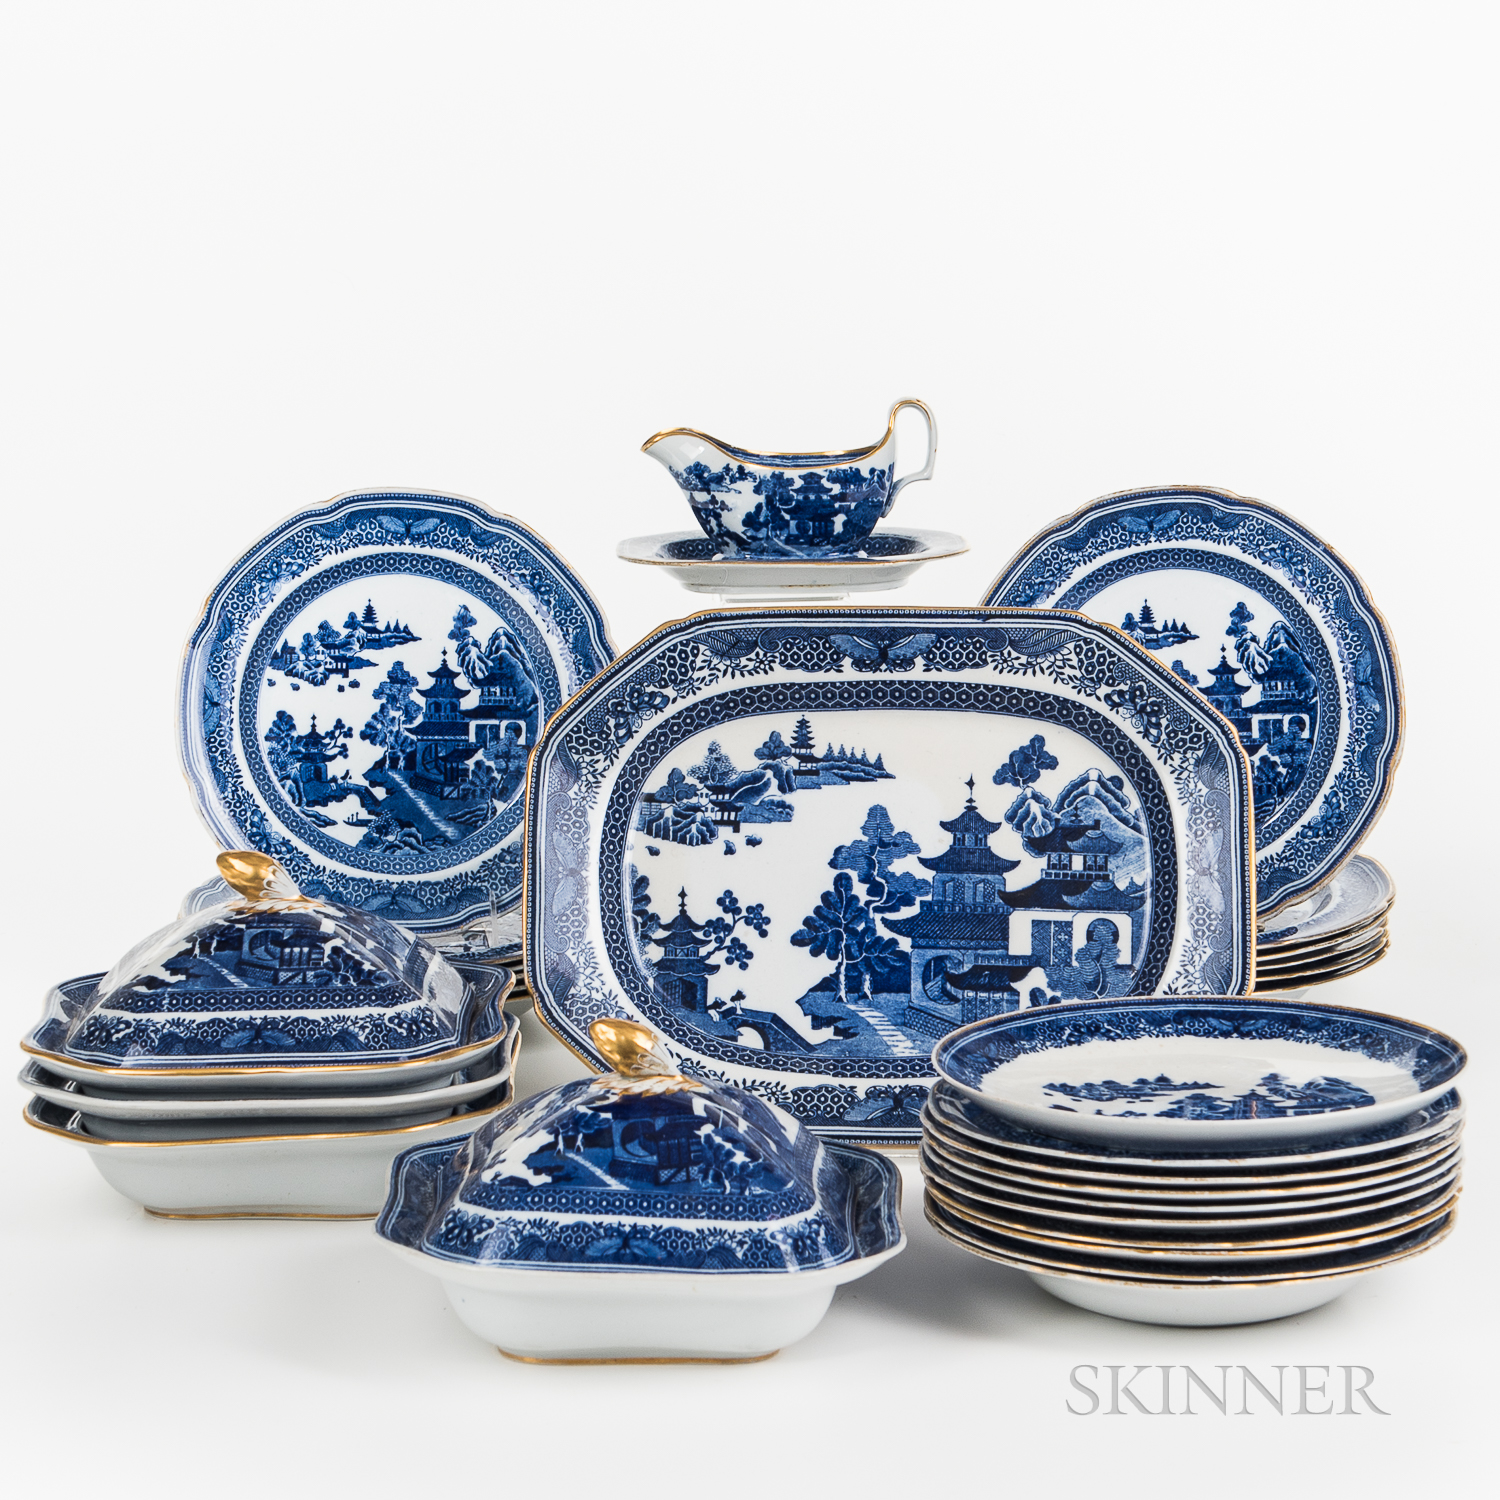 Approximately Forty Pieces of Spode Dinnerware